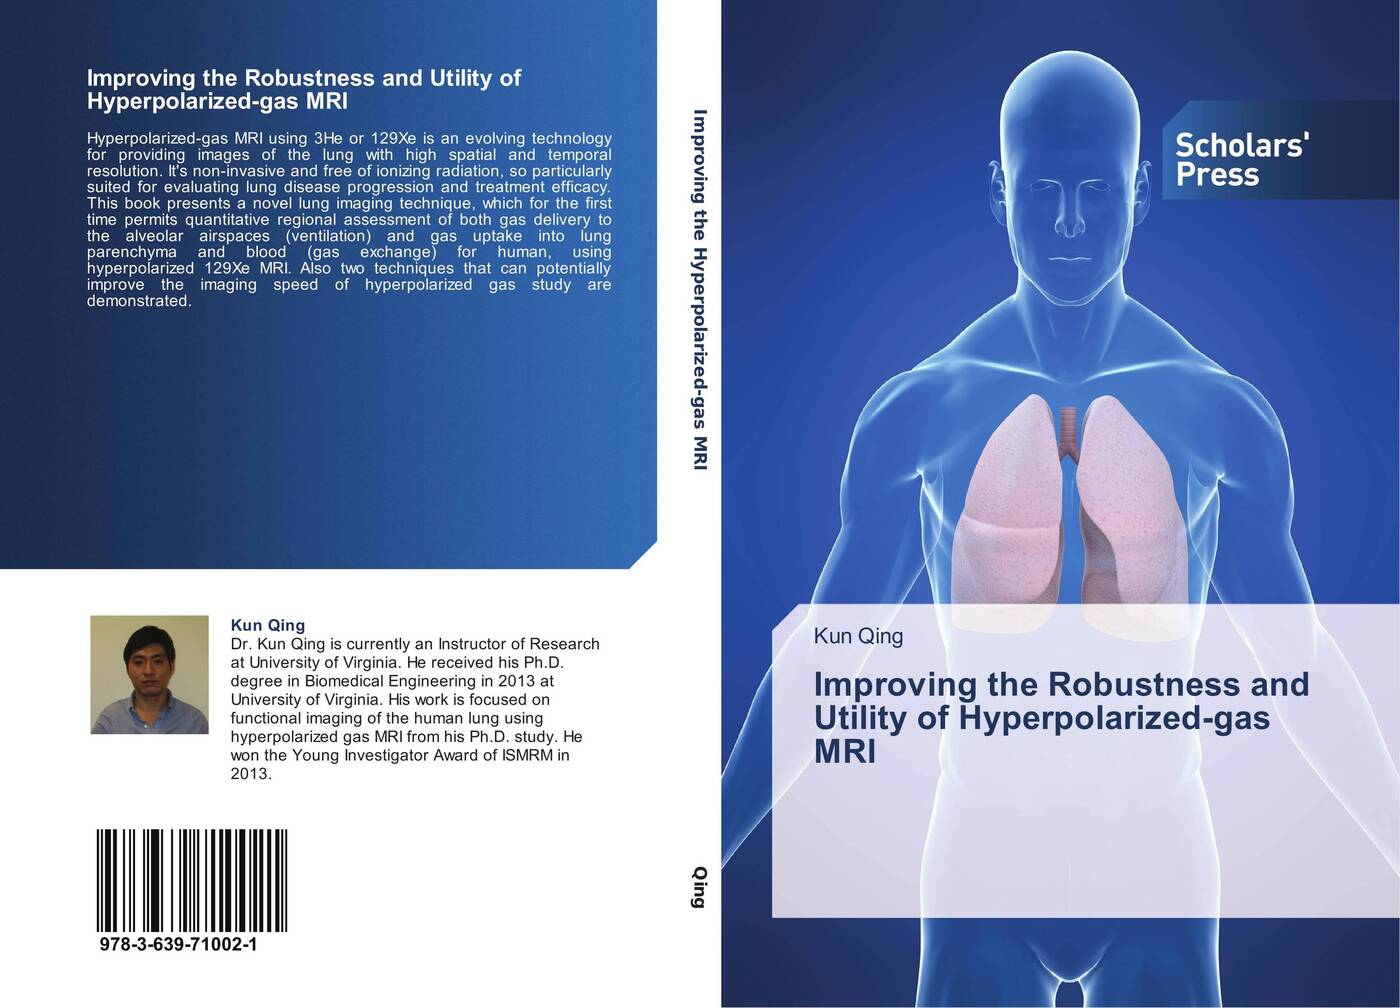 Kun Qing Improving the Robustness and Utility of Hyperpolarized-gas MRI characterization of microparticles for lung cancer delivery